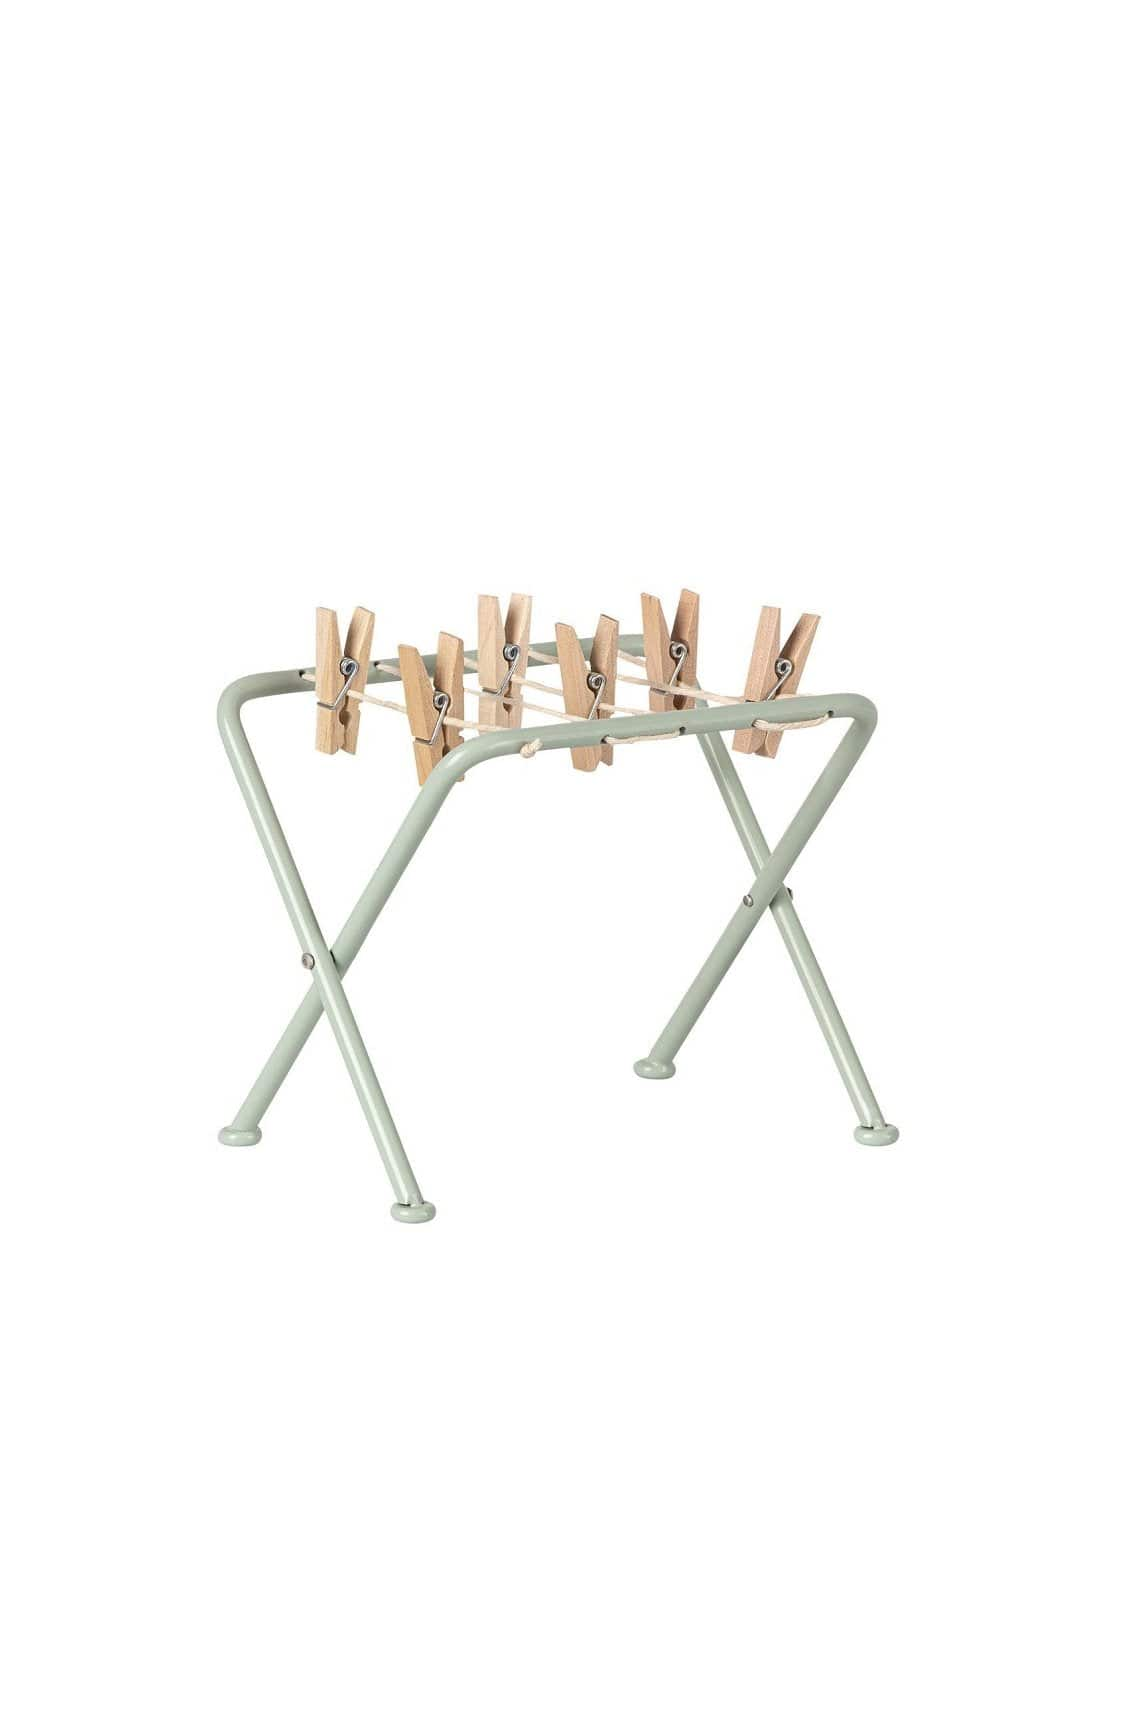 MAILEG METAL DRYING RACK CLOTHES POST WITH PEGS MINT PLAY KIDS Maileg